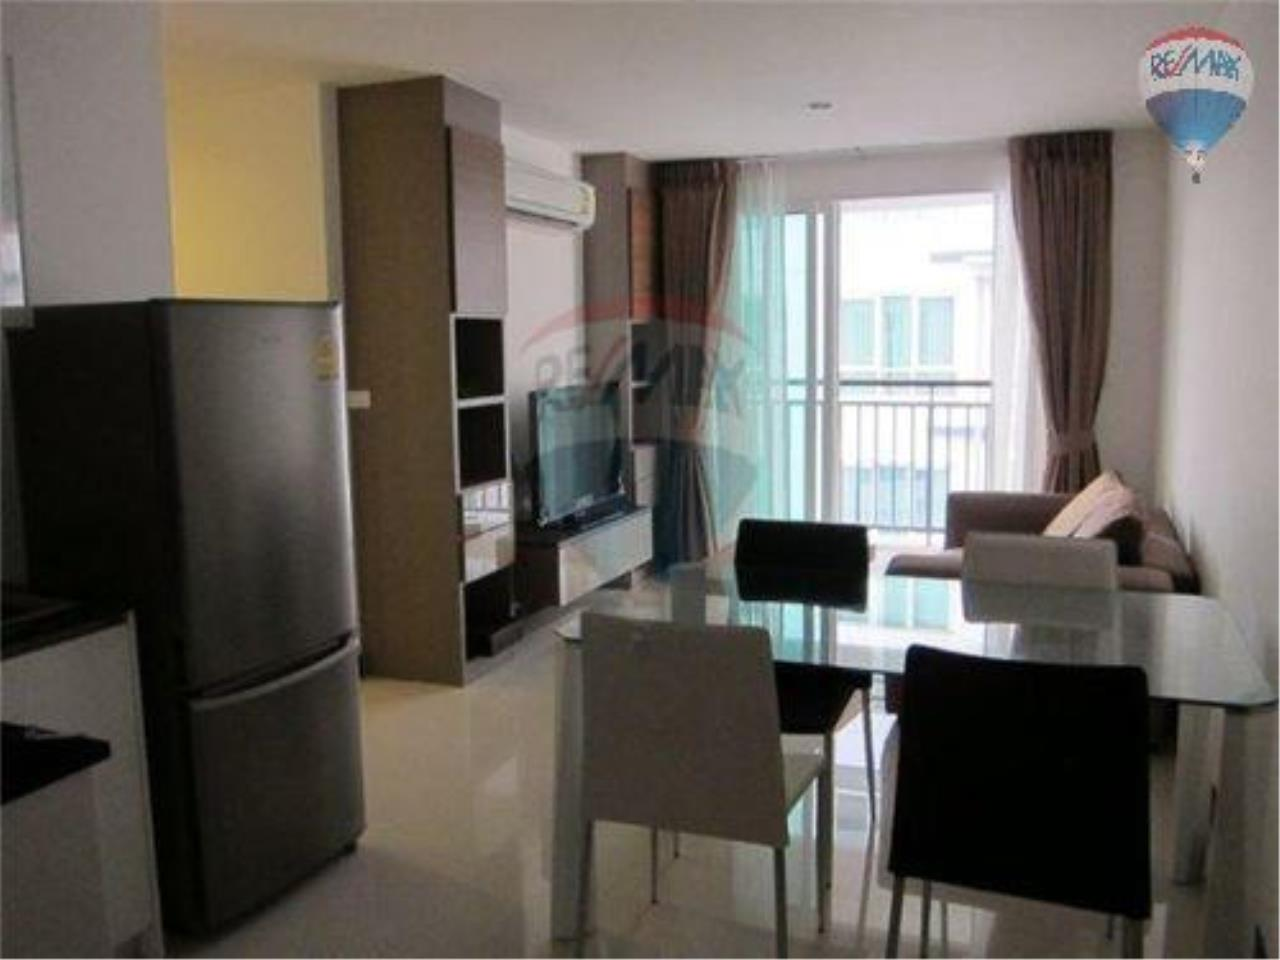 RE/MAX Properties Agency's 2 Bedroom Apartment for rent - VOQUE in Sukhumvit 16 1